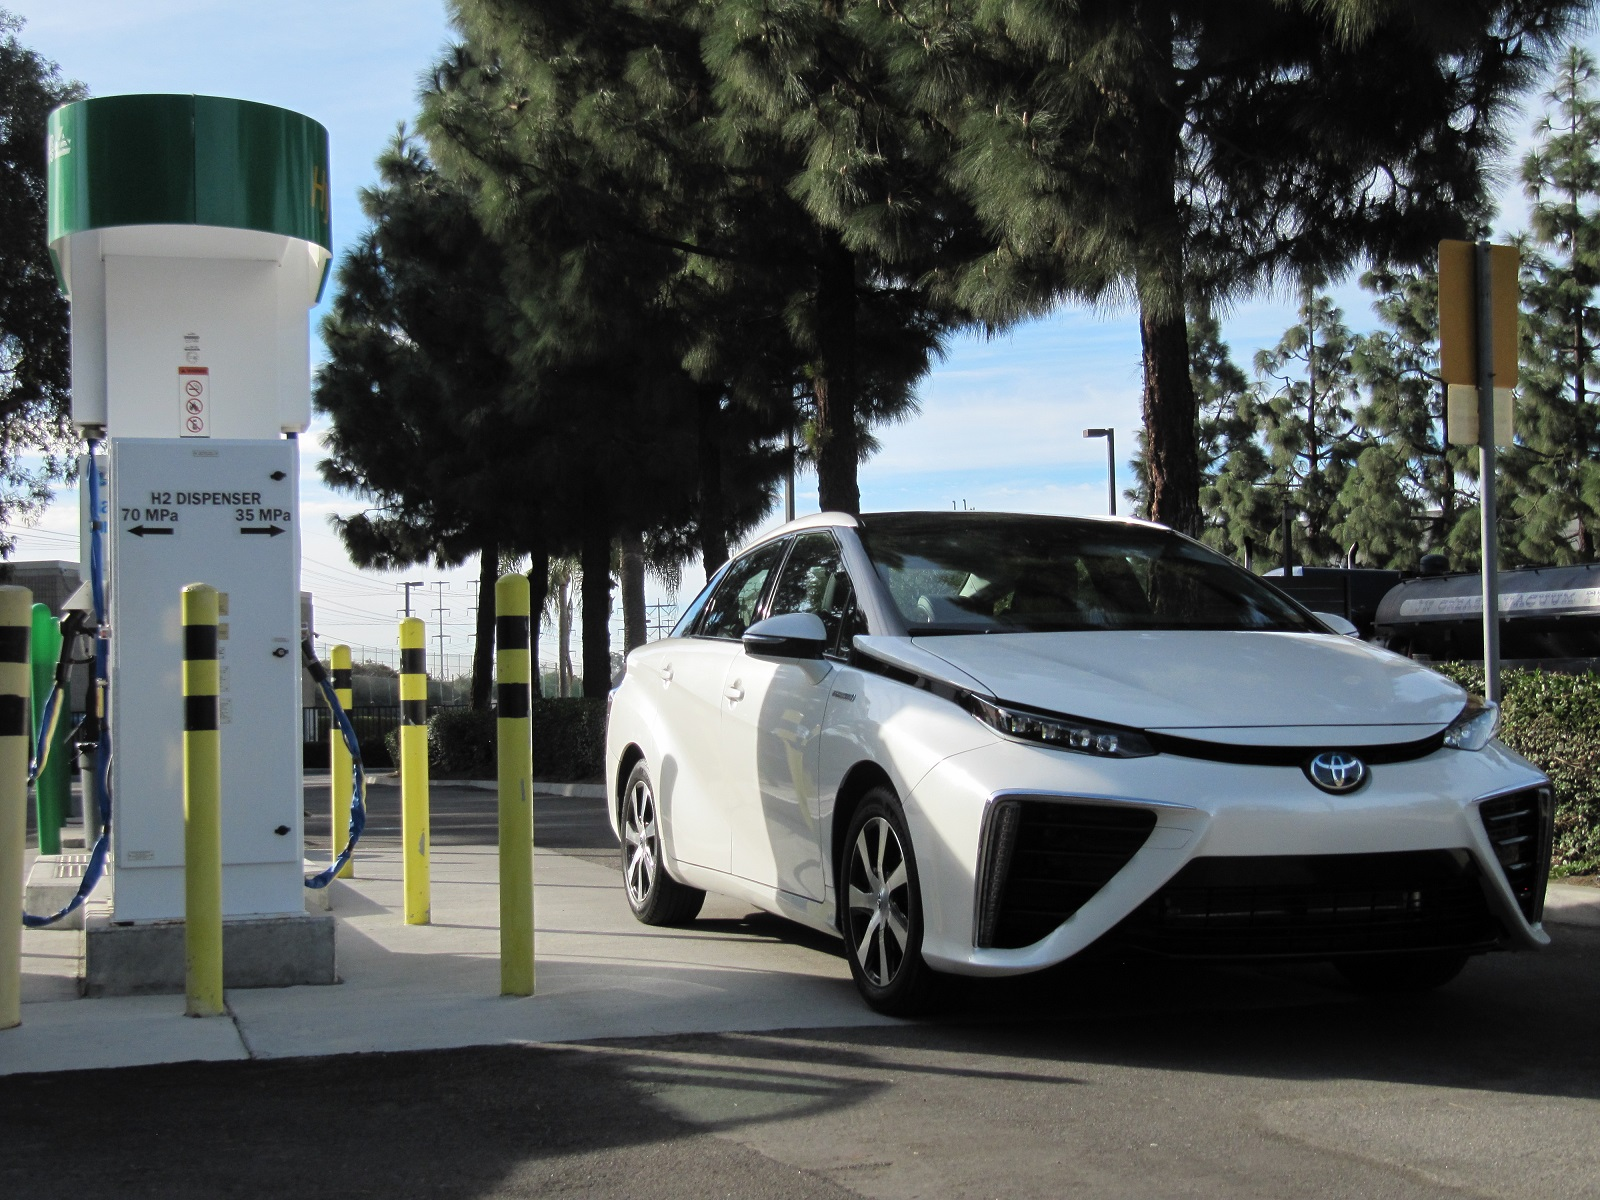 2016 Toyota Mirai Fuel-Cell Car Will Alter Industry As Prius Did, Says Exec